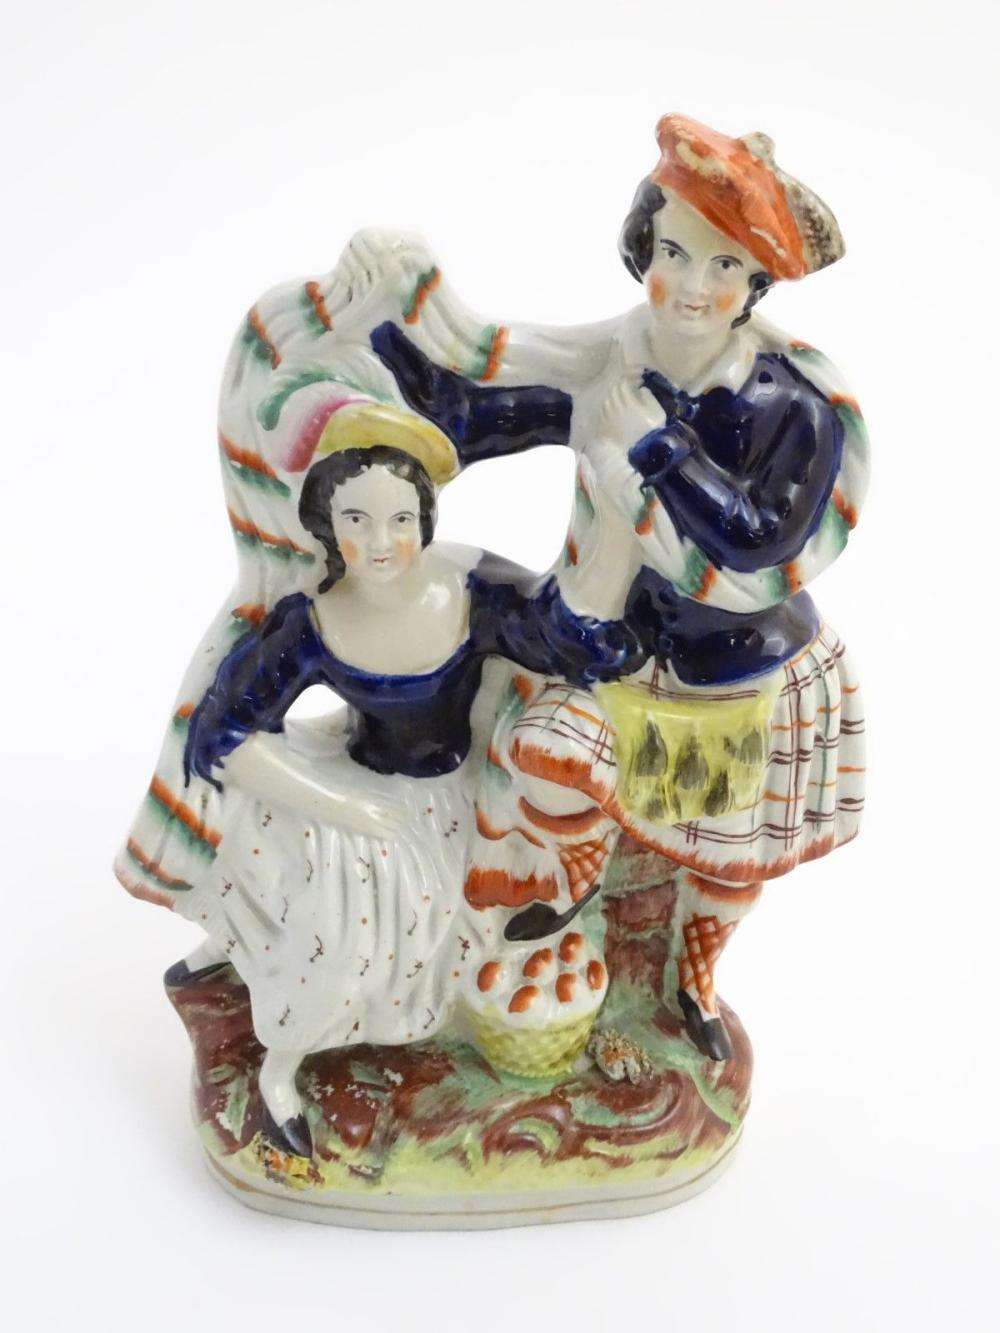 A Victorian Staffordshire pottery figural group of a man and a woman in highland dress, he is wearin